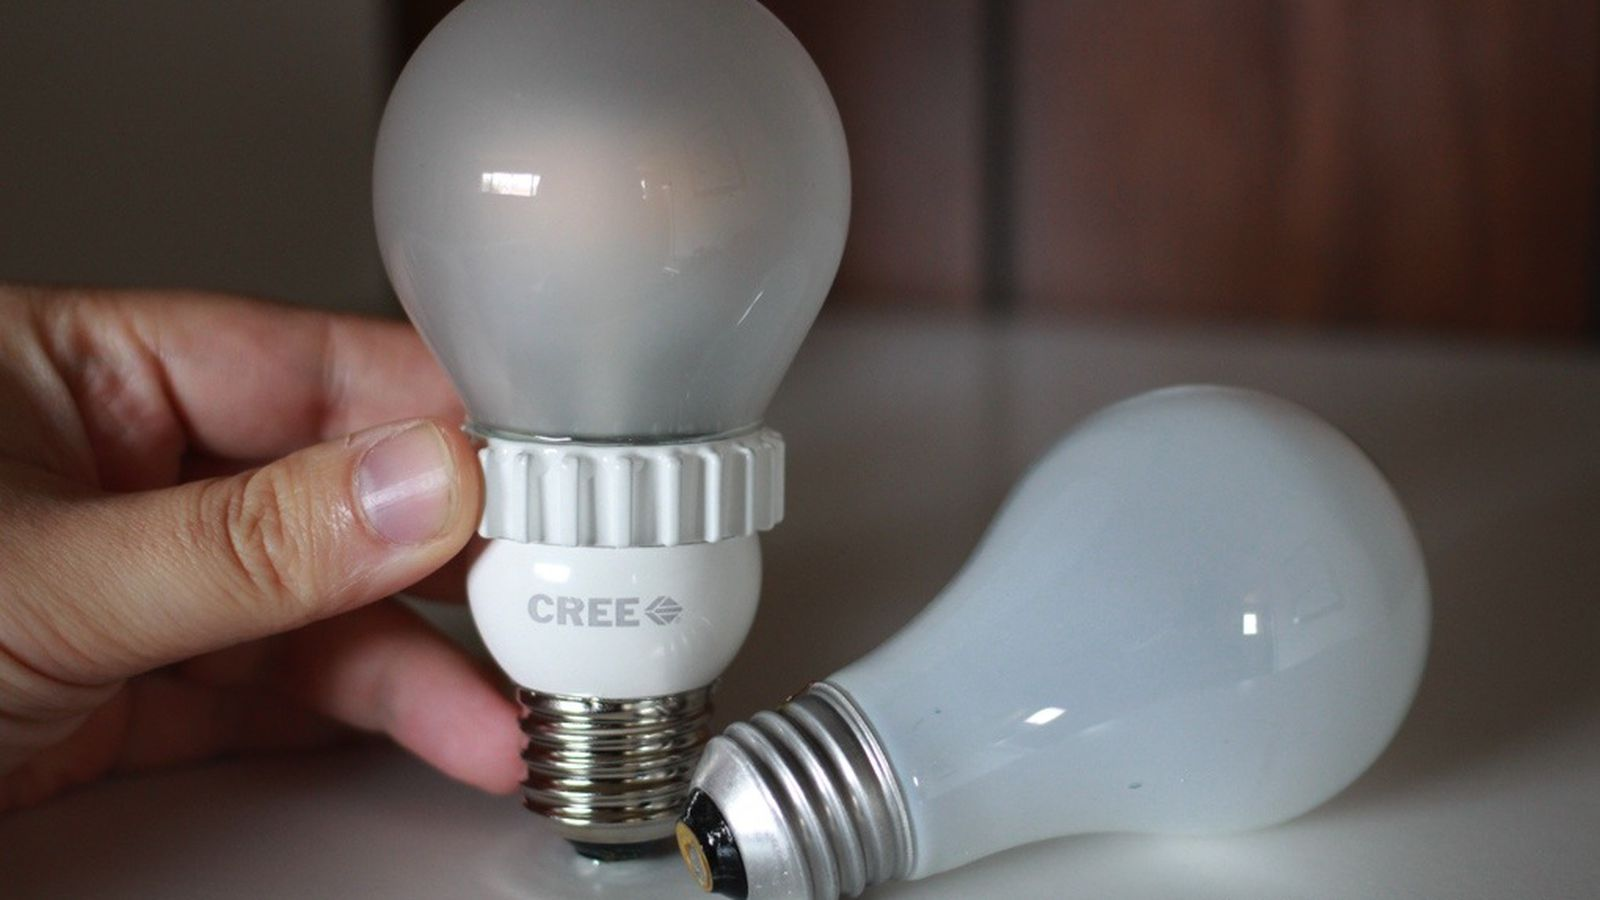 Cree's $13 LED light bulb is the best yet, looks and feels ...